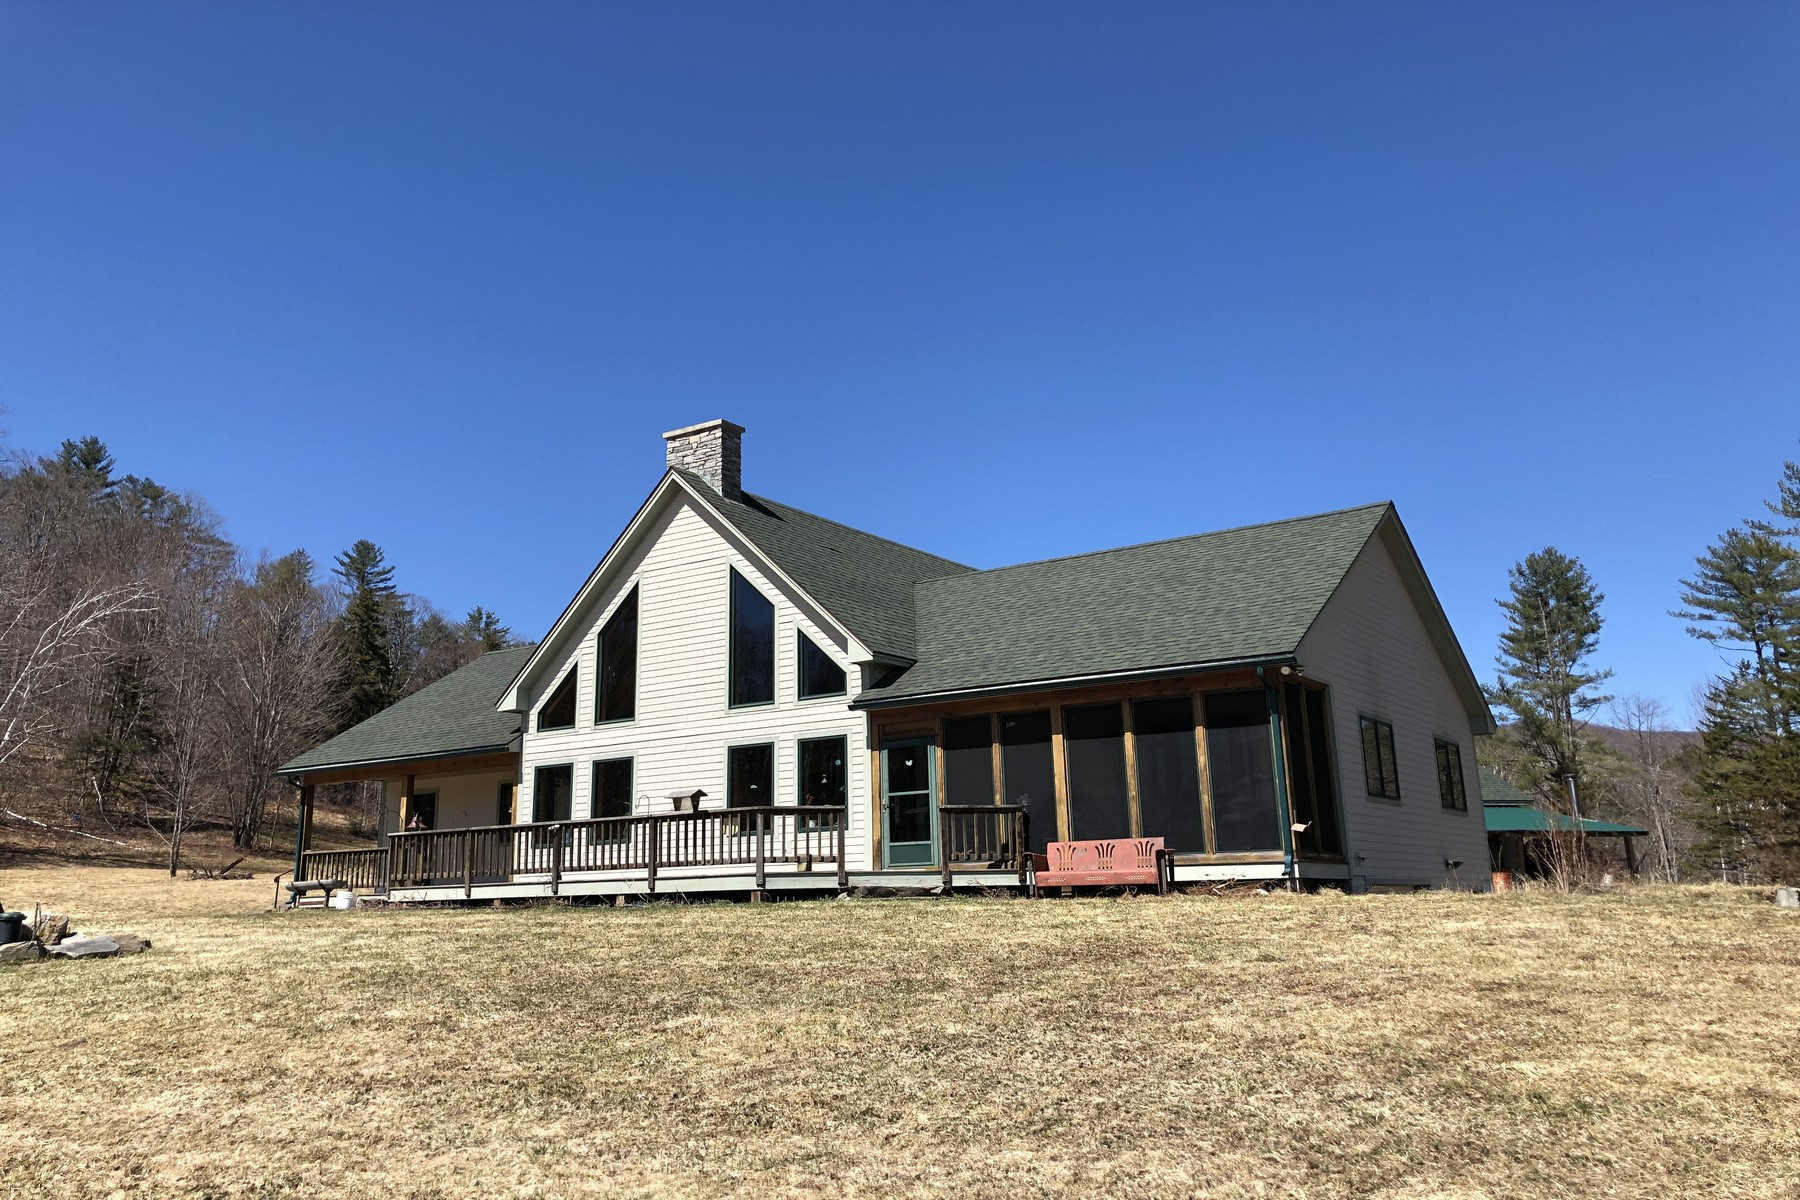 single family homes for Sale at 286 Eddy Rd, Chester 286 Eddy Rd Chester, Vermont 05143 United States